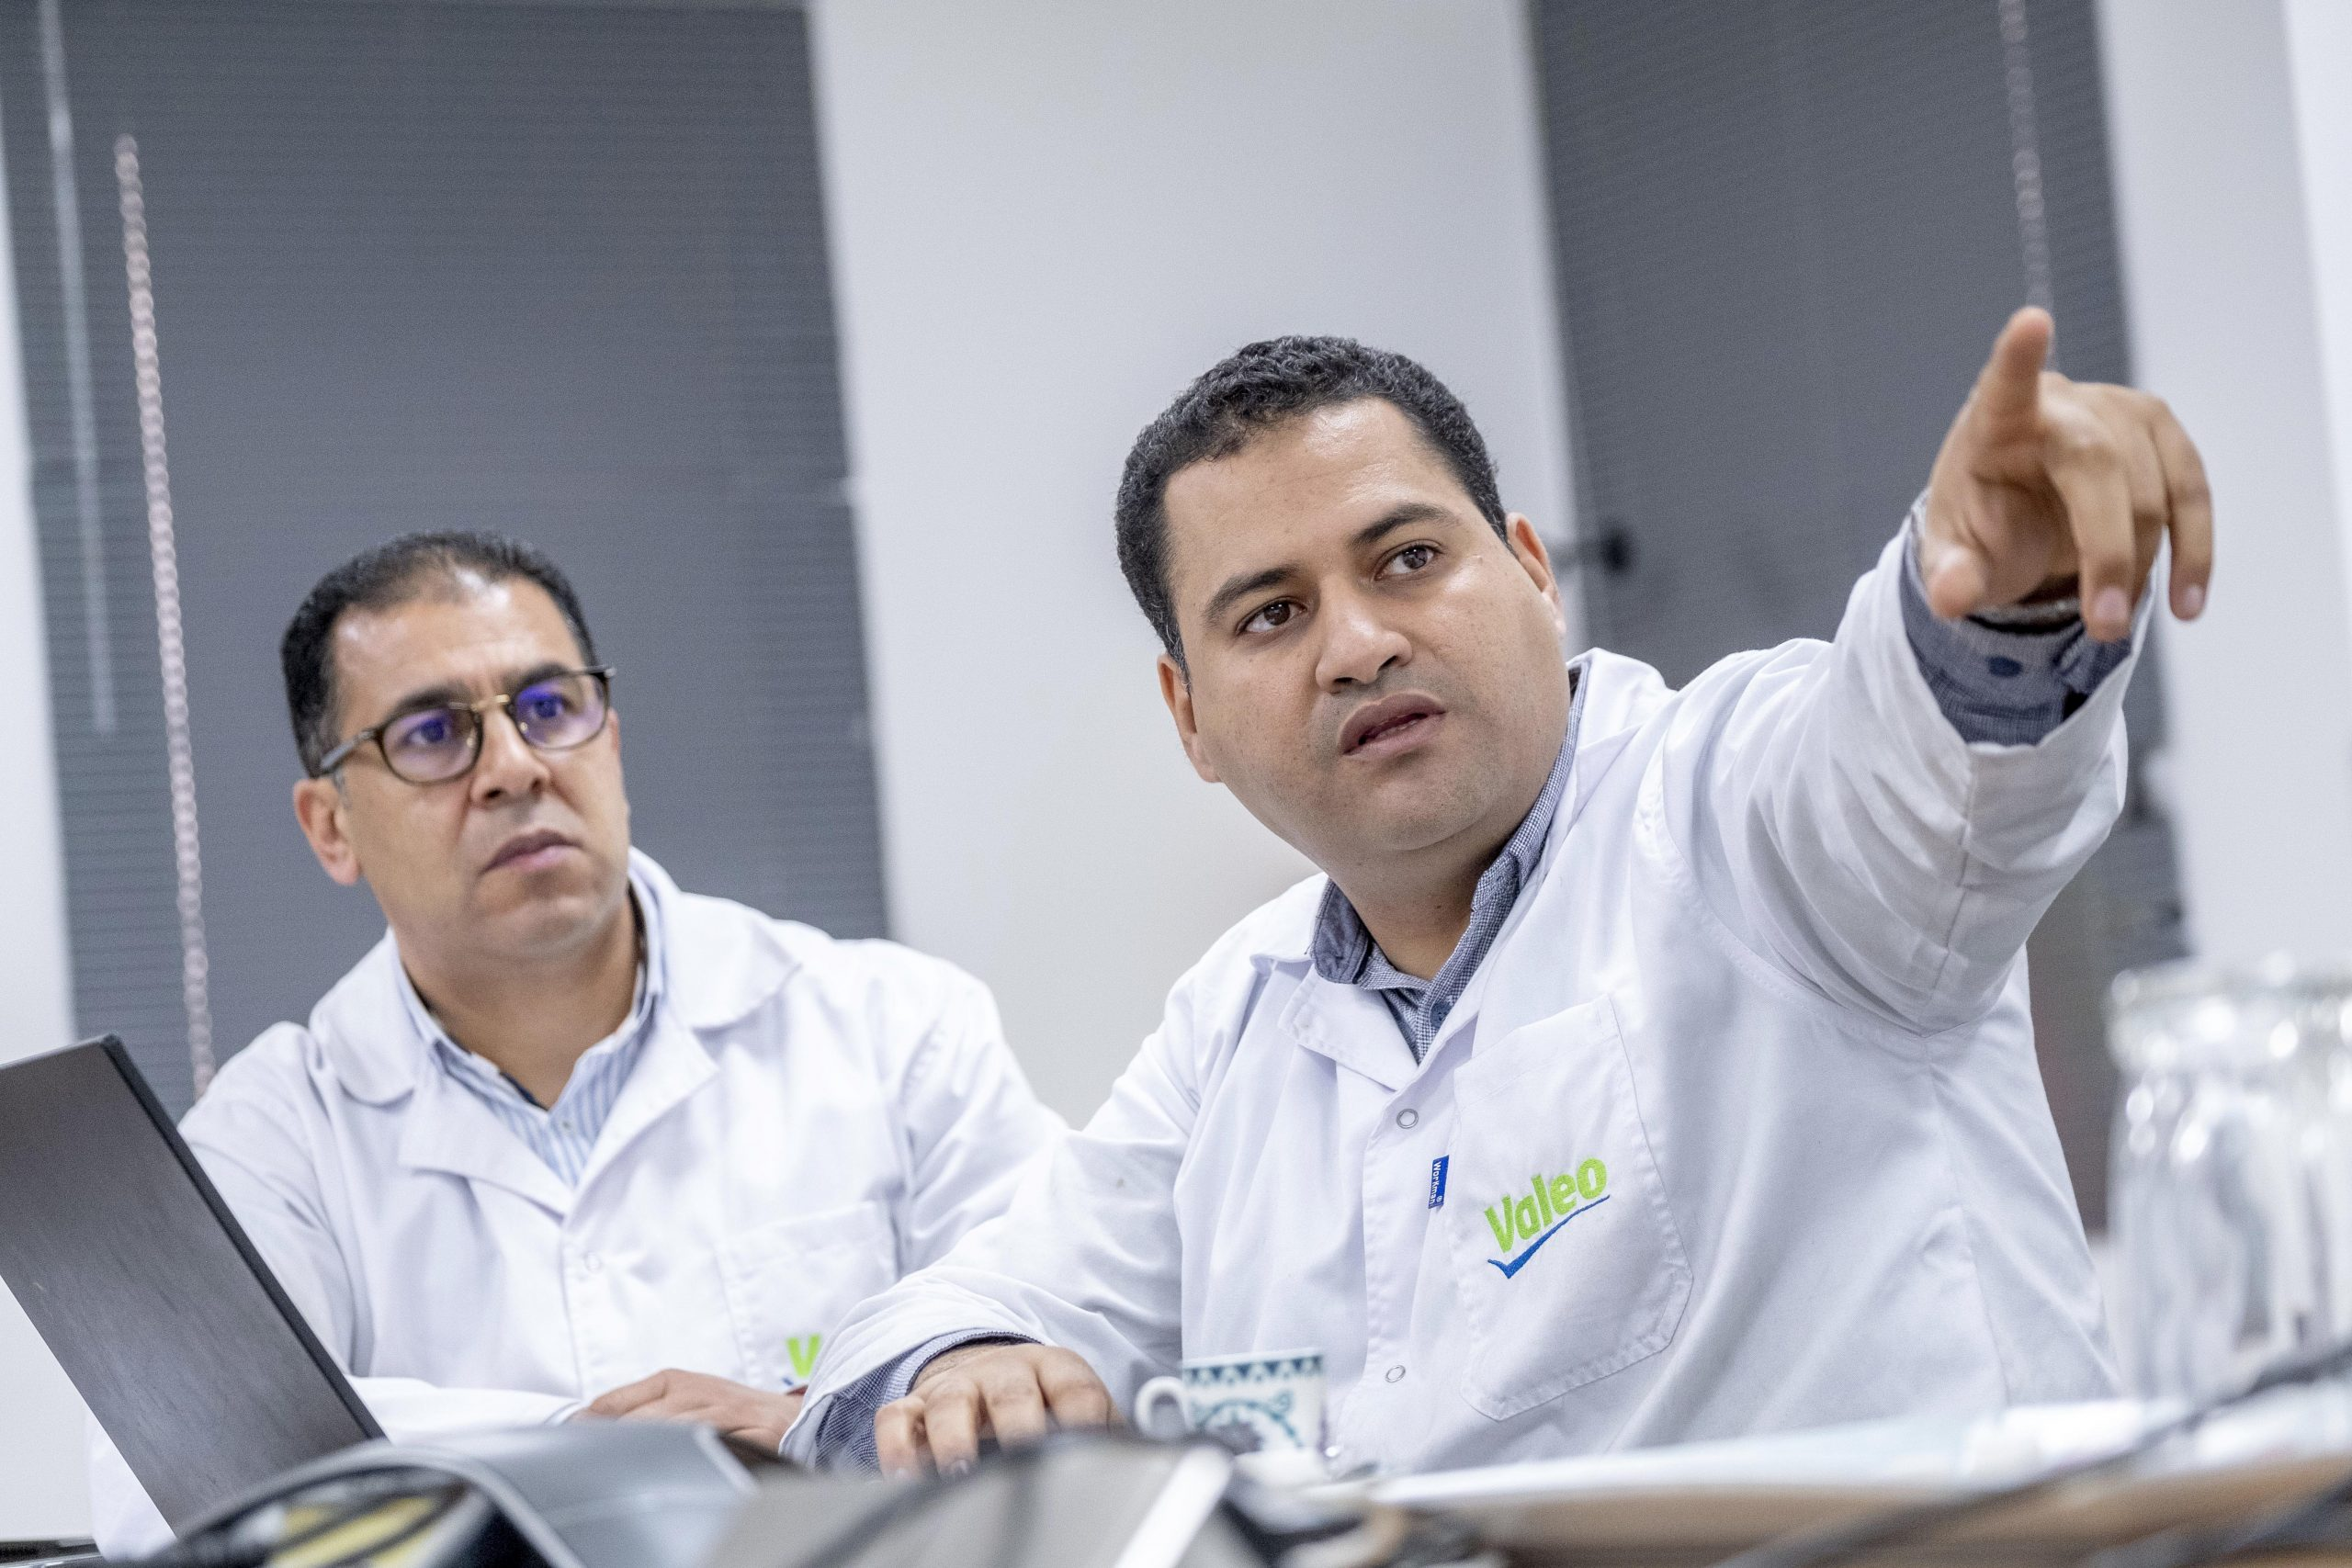 Two workers at Valeo Tunisia